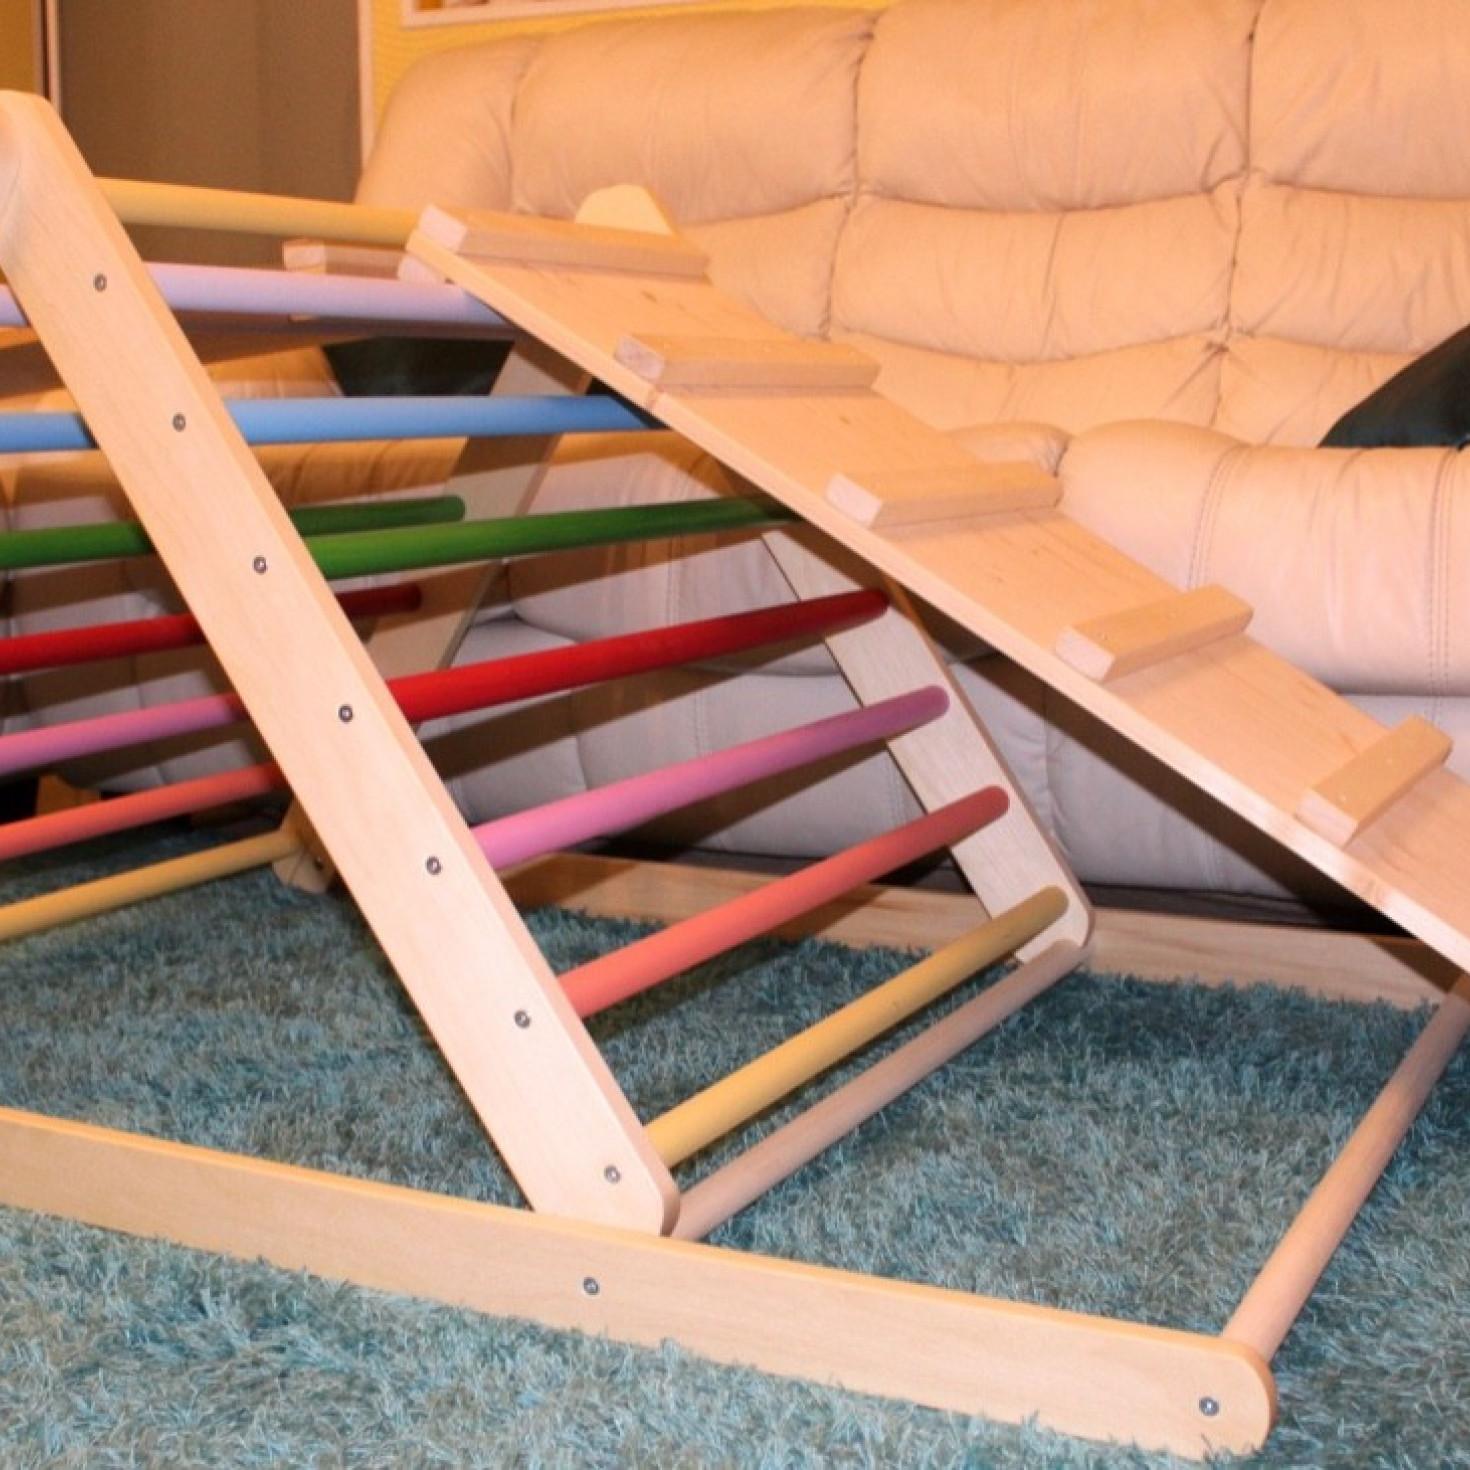 A Pikler triangle with ladder and slide boards placed in a living room